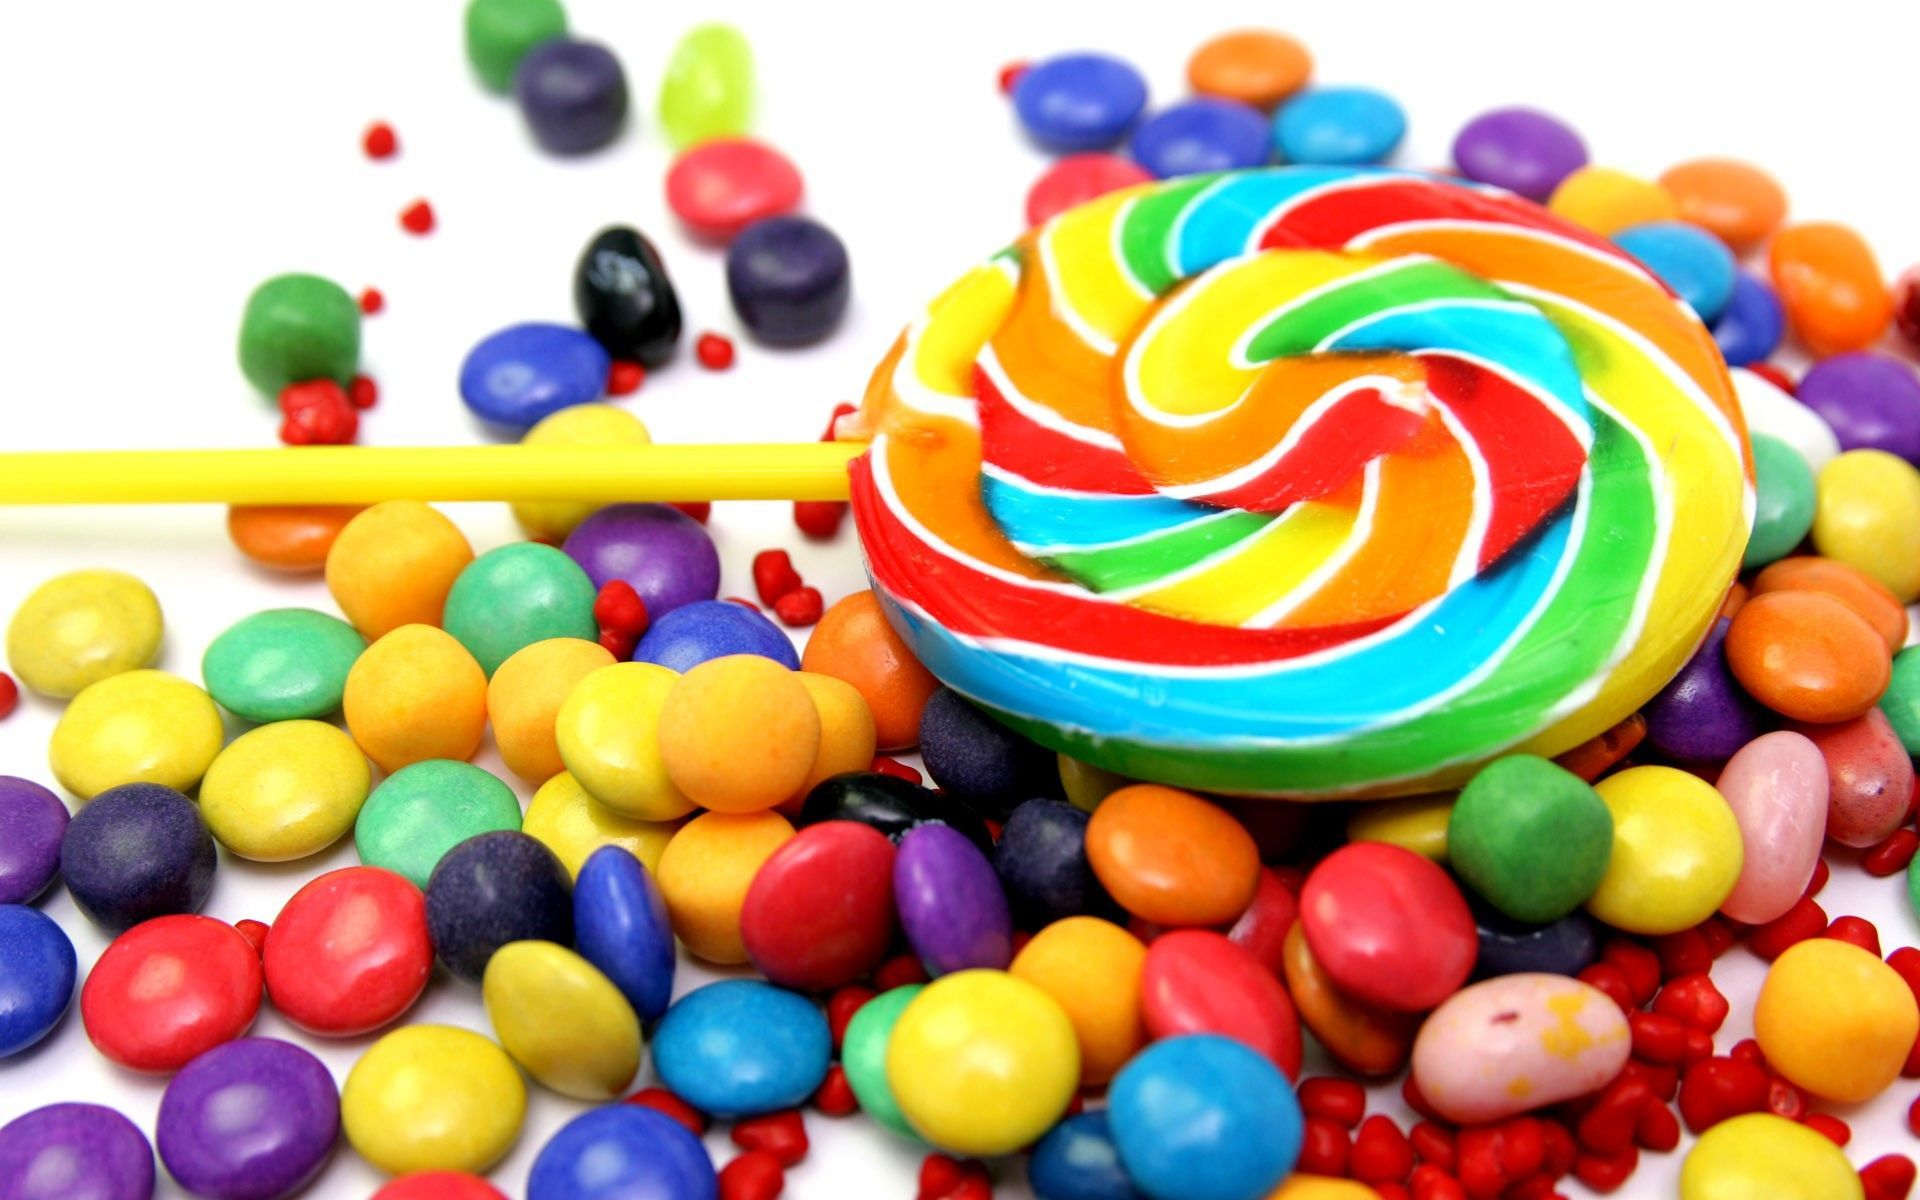 show me pictures of candy